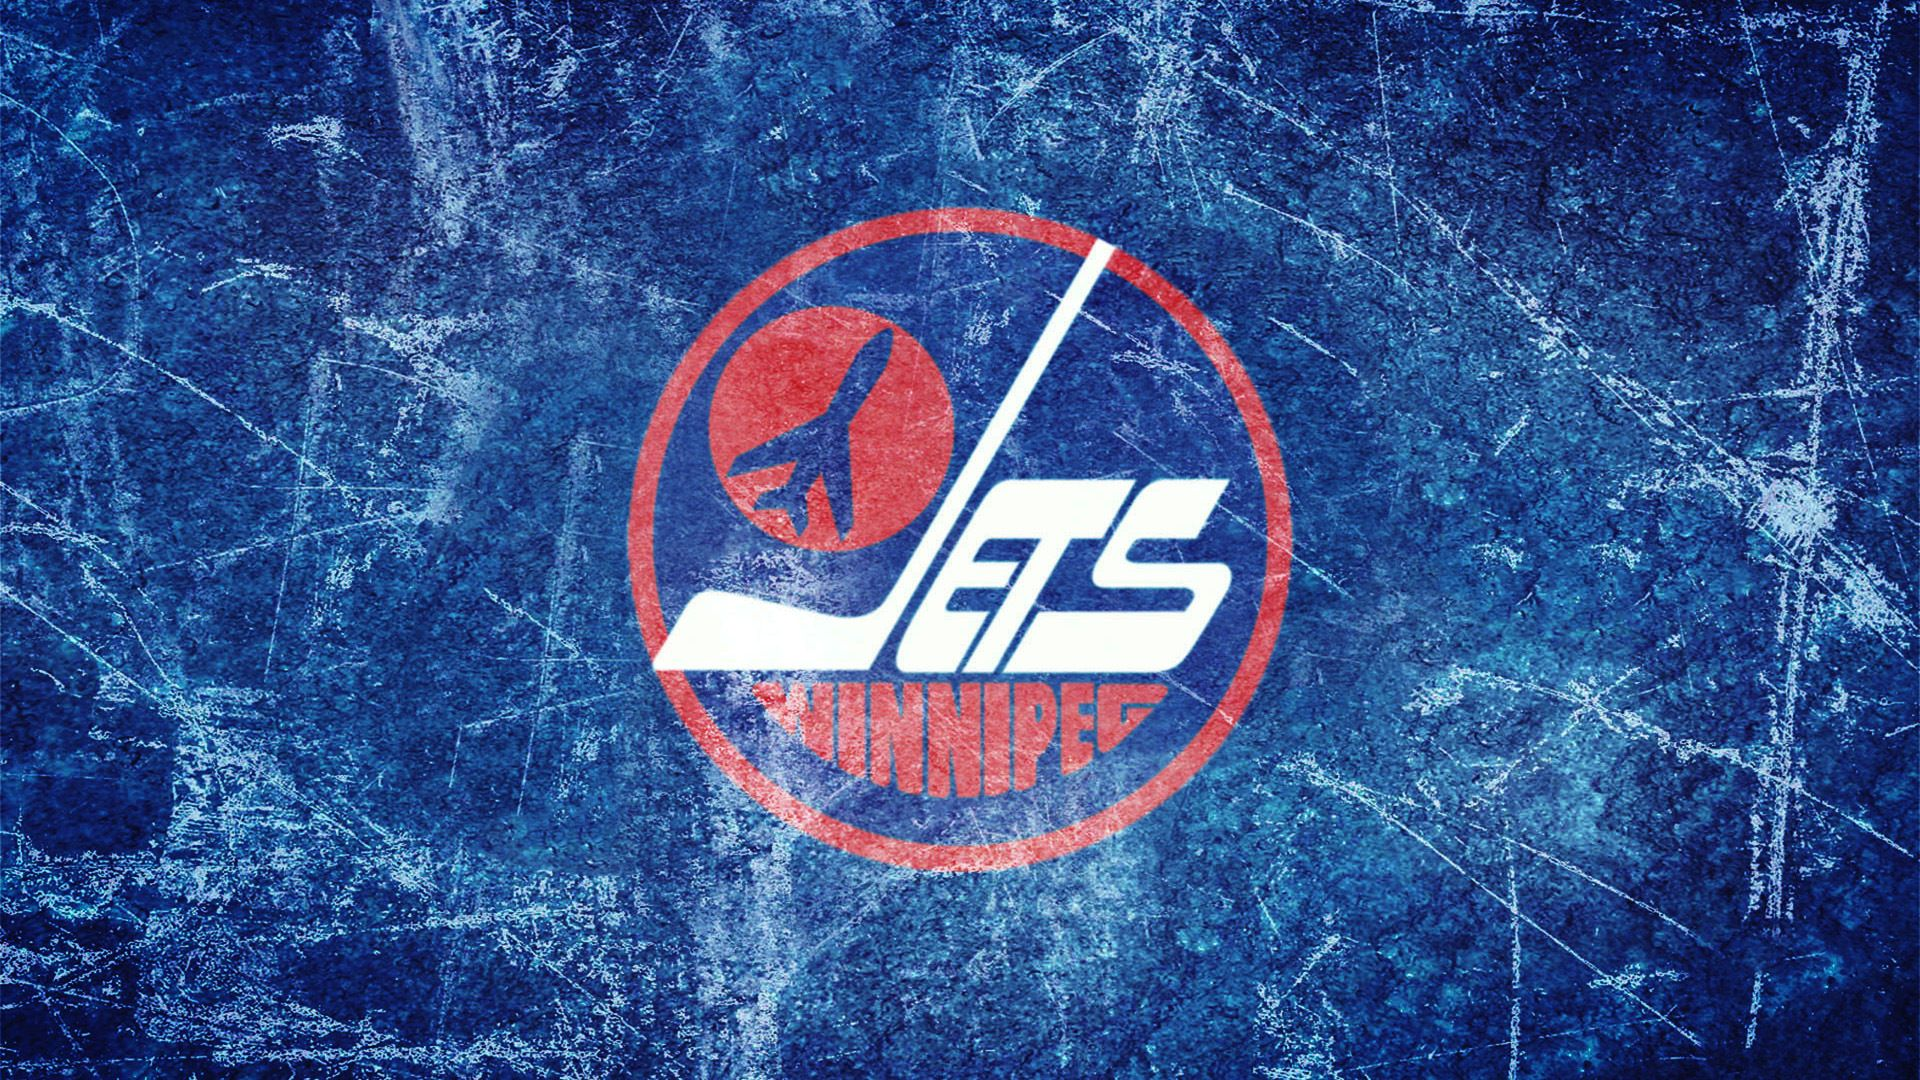 winnipeg jets wallpaper GO JETS GO Jets hockey Jet Nfl 1920x1080